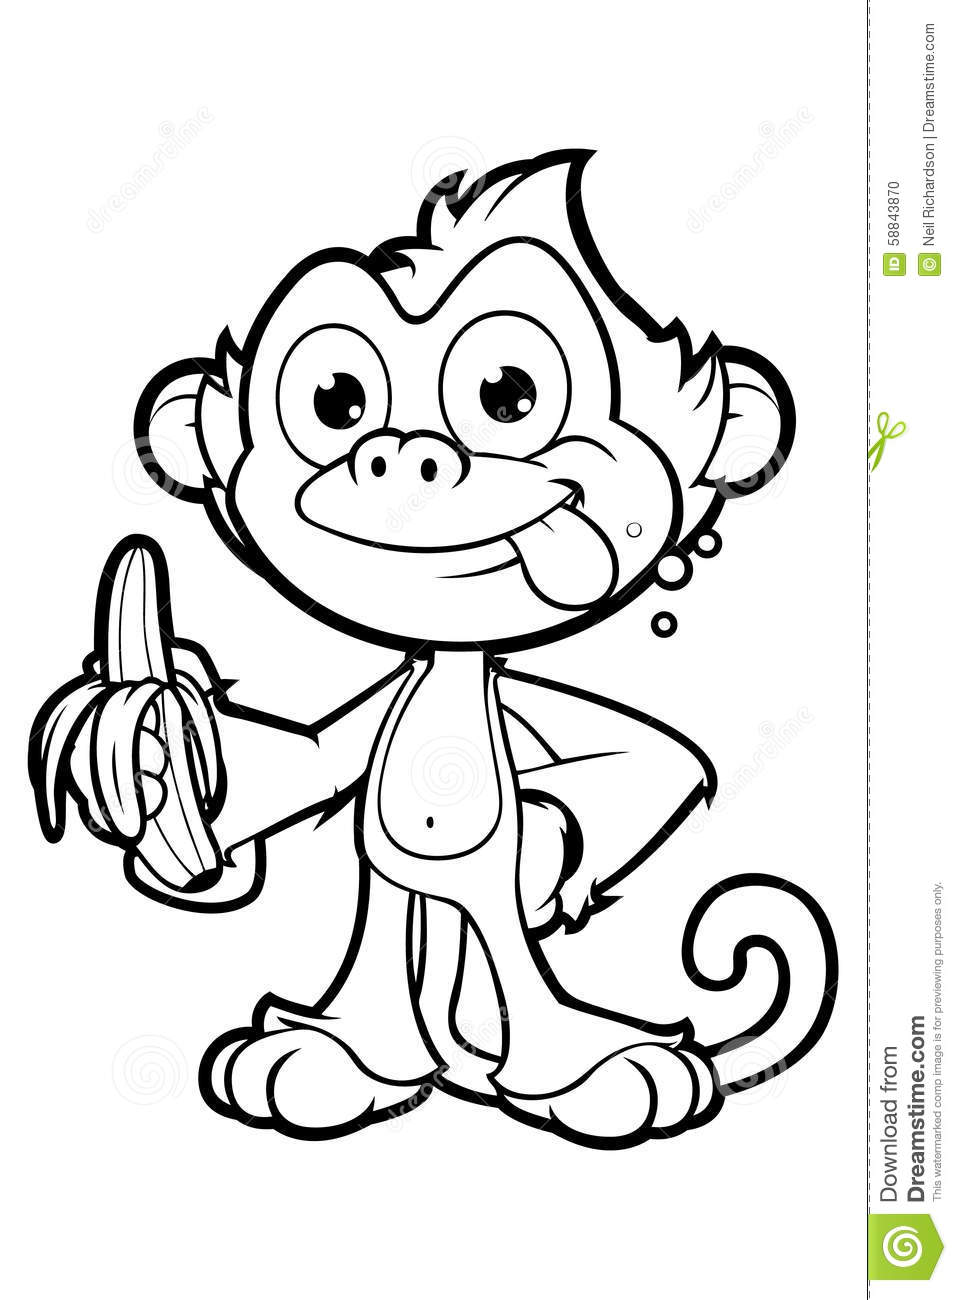 Cartoon Characters Black And White : Black and white cartoon monkey pixshark images